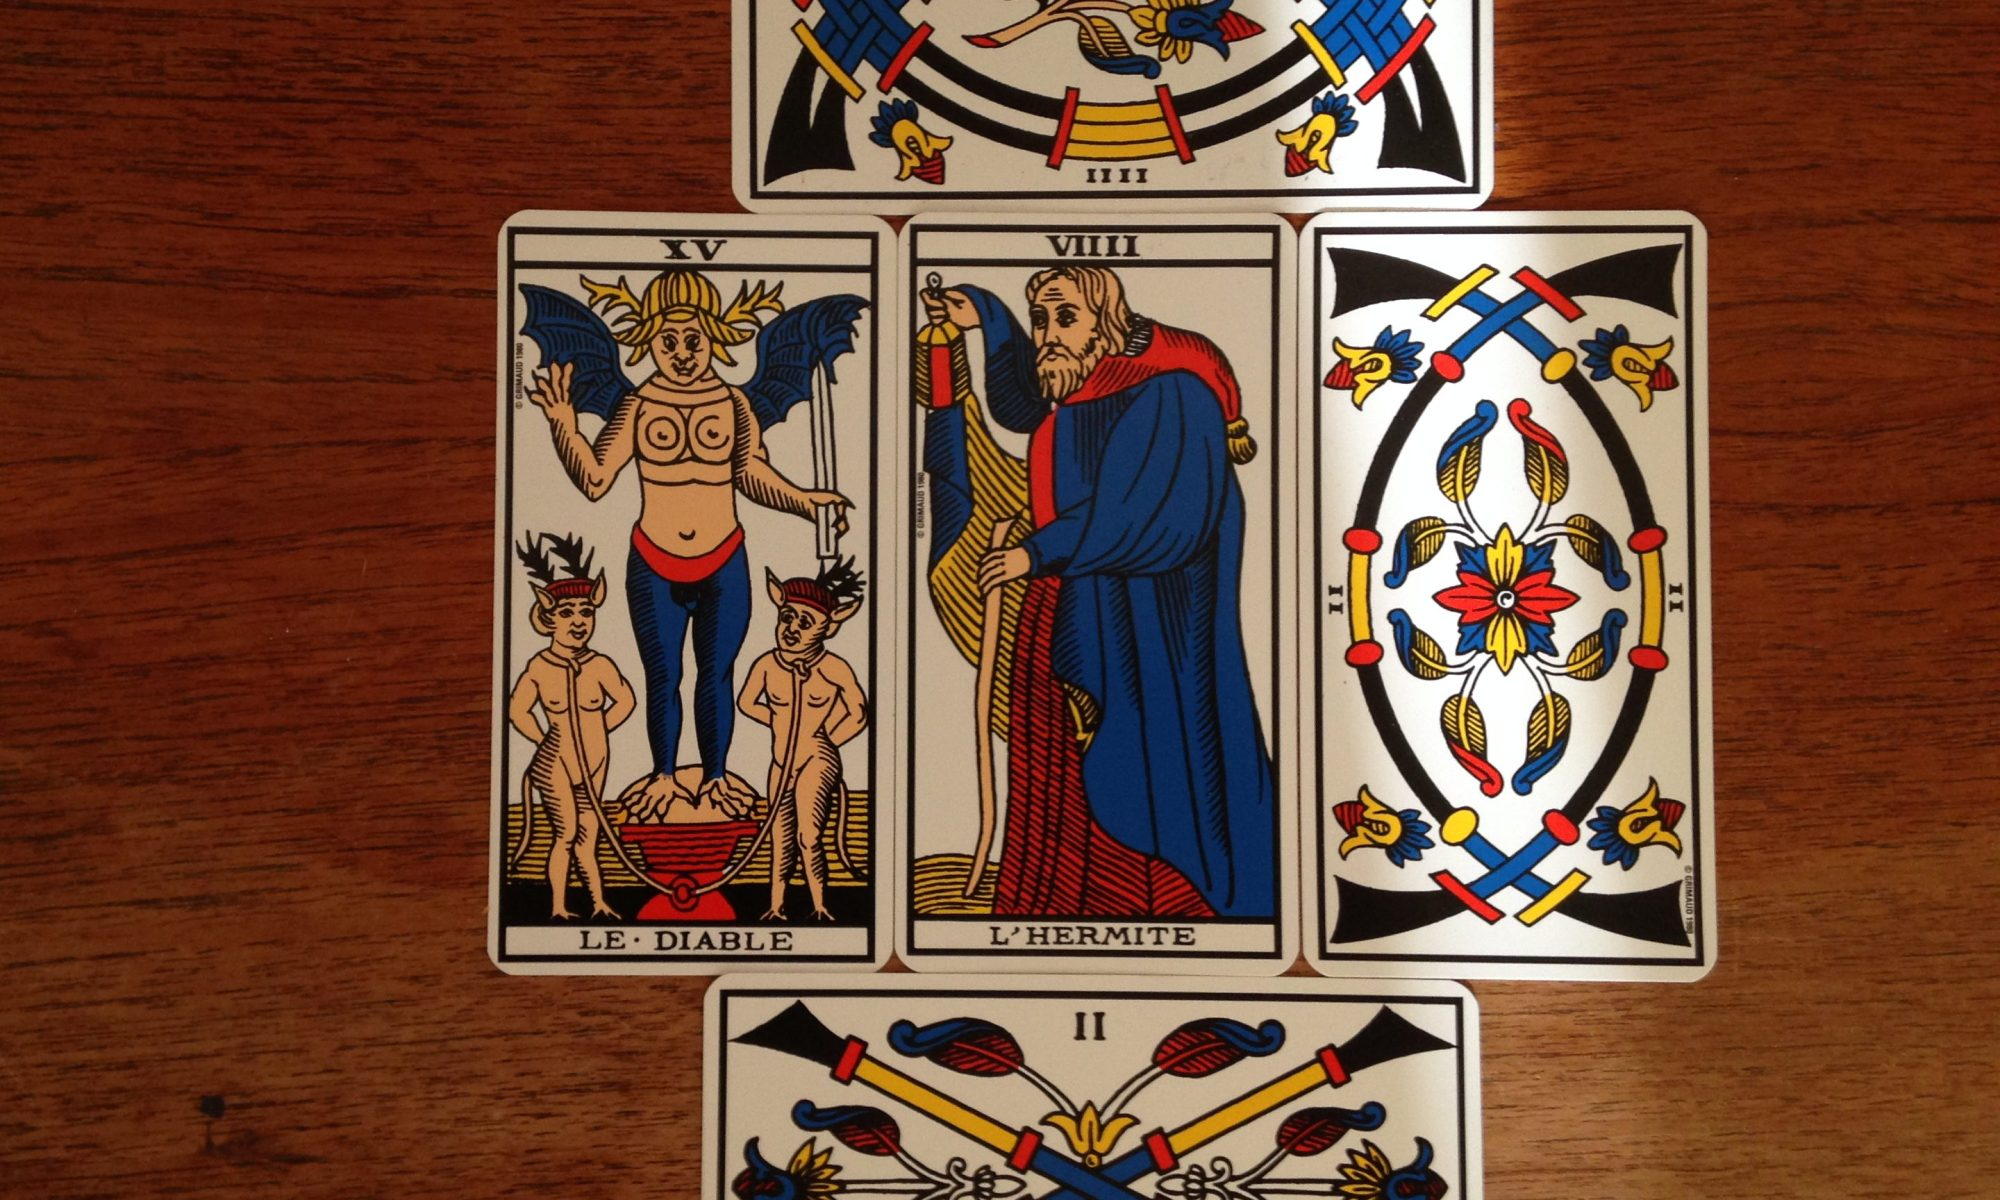 Tarot Cards - The Devil, The Hermit, Two of Swords